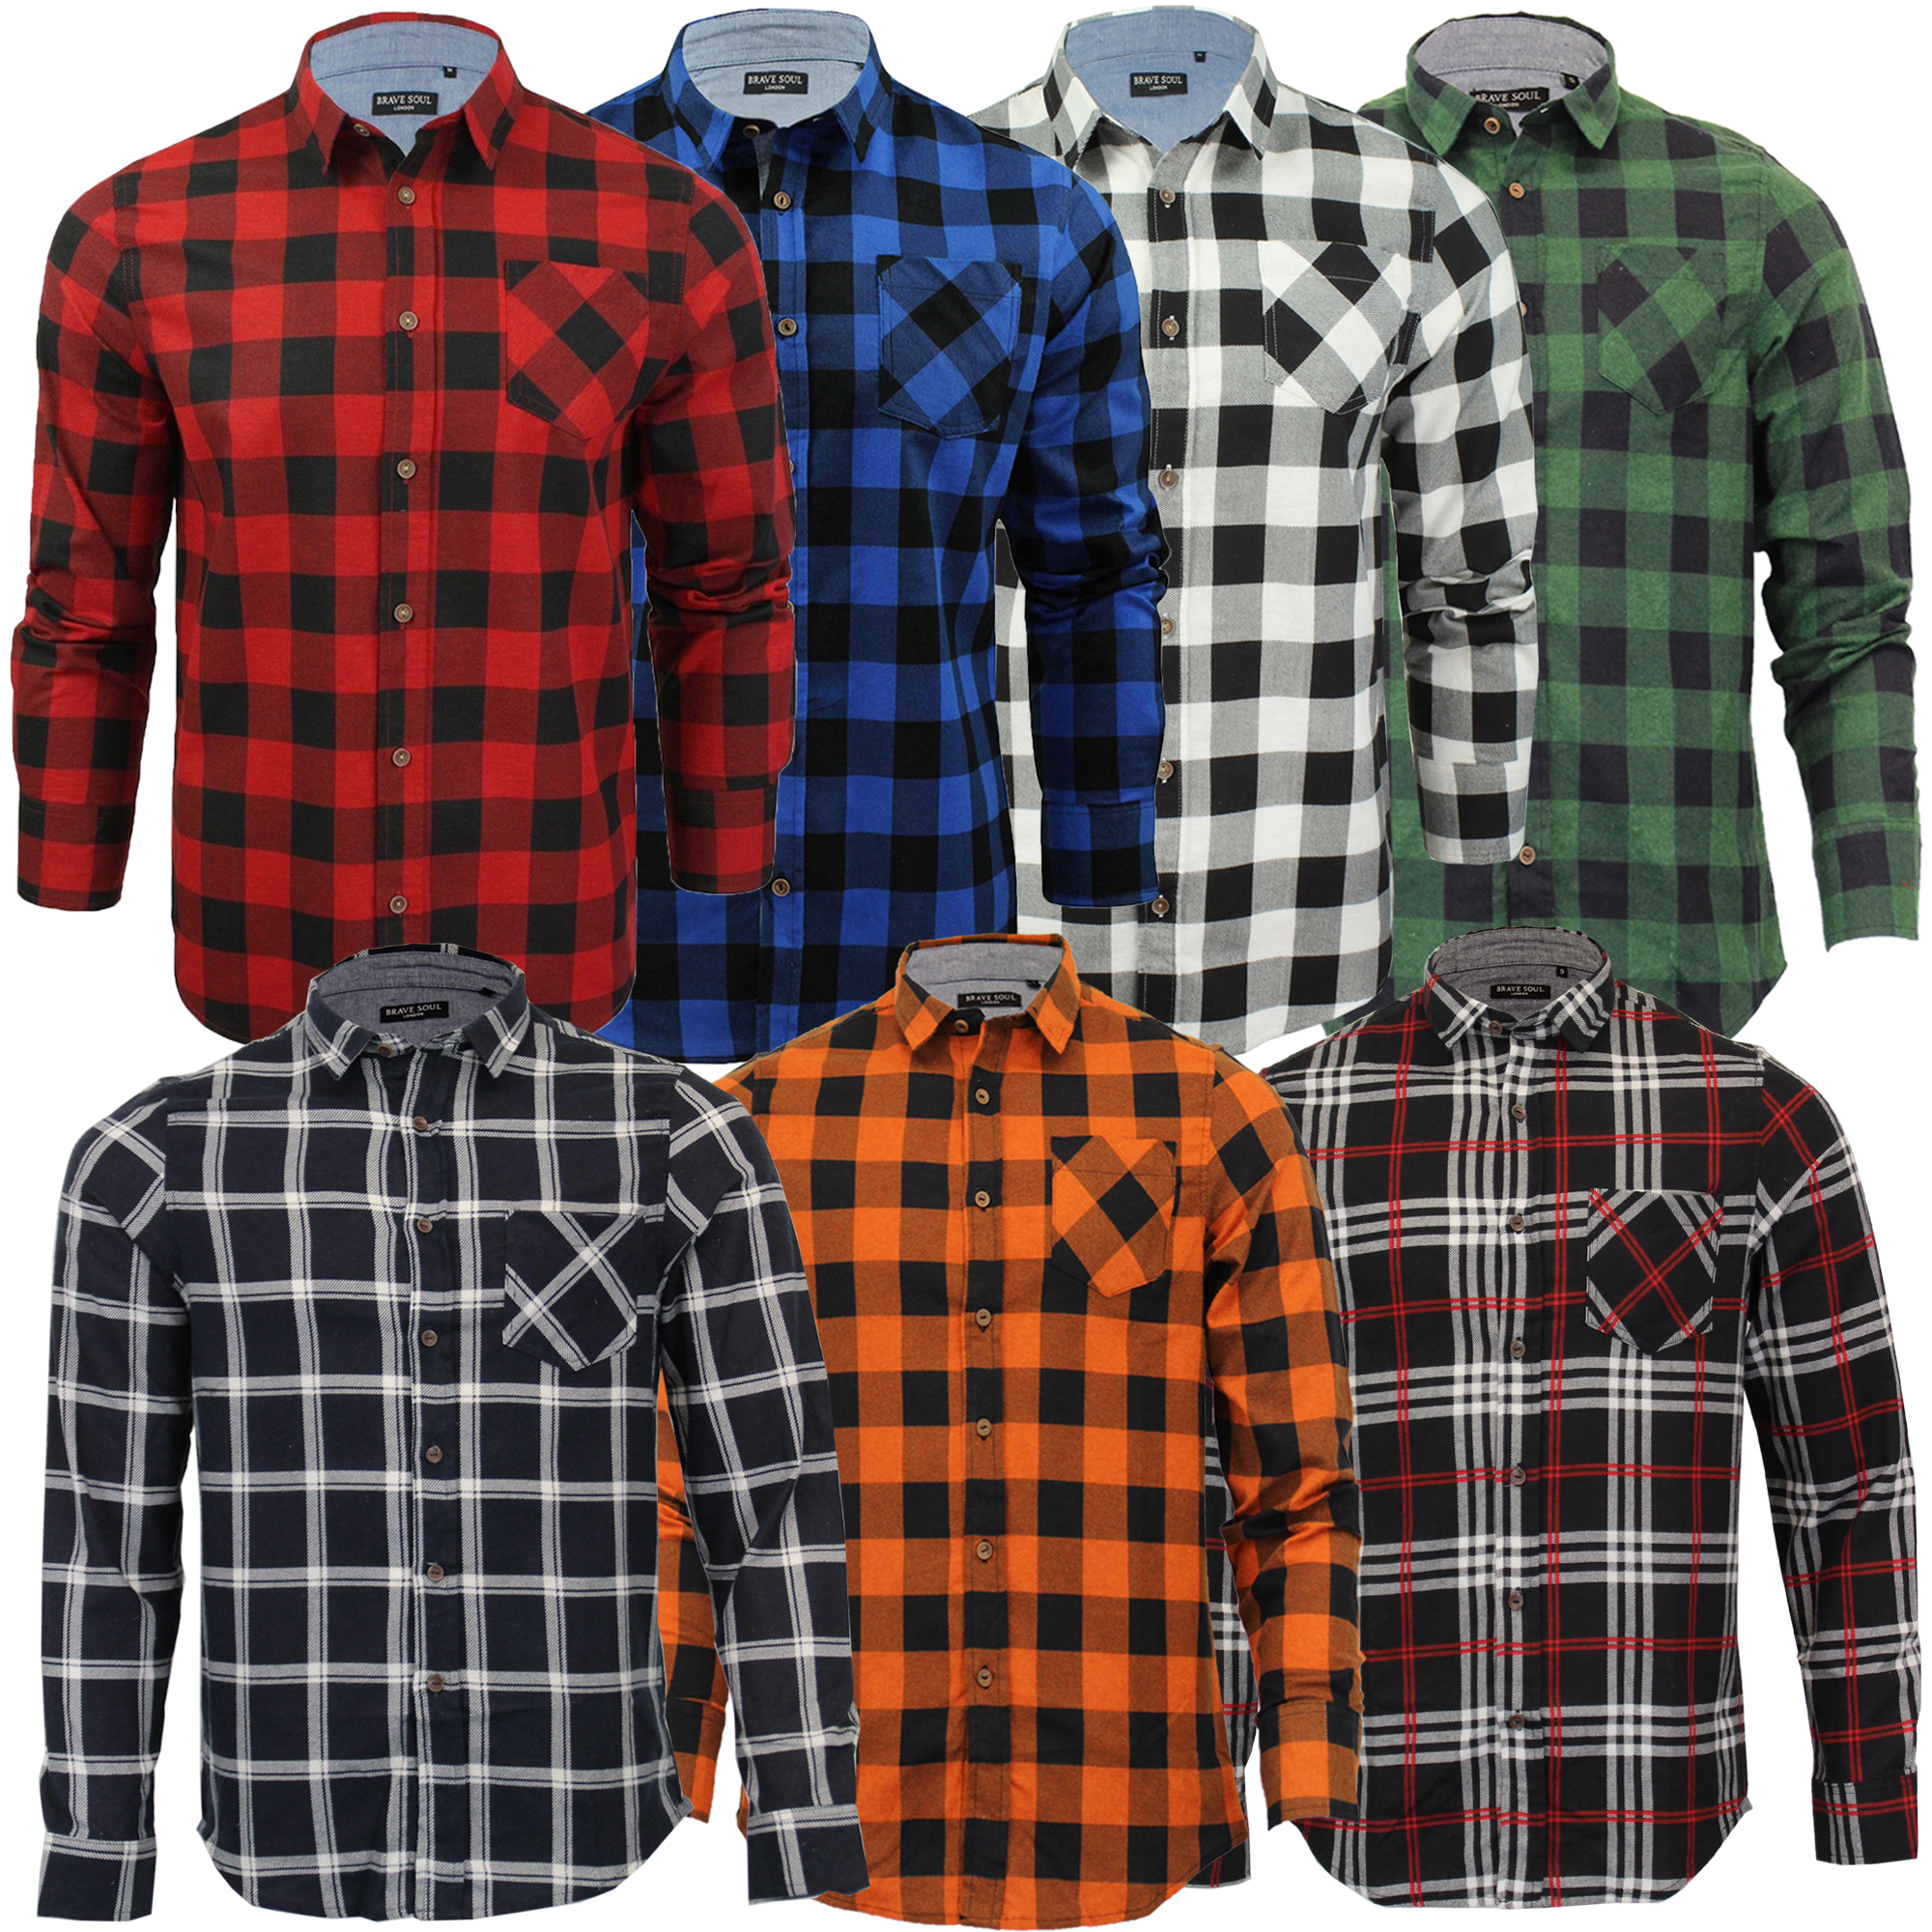 Mens-Checked-Tartan-Long-Sleeved-Collared-Shirt-By-Brave-Soul miniatuur 4